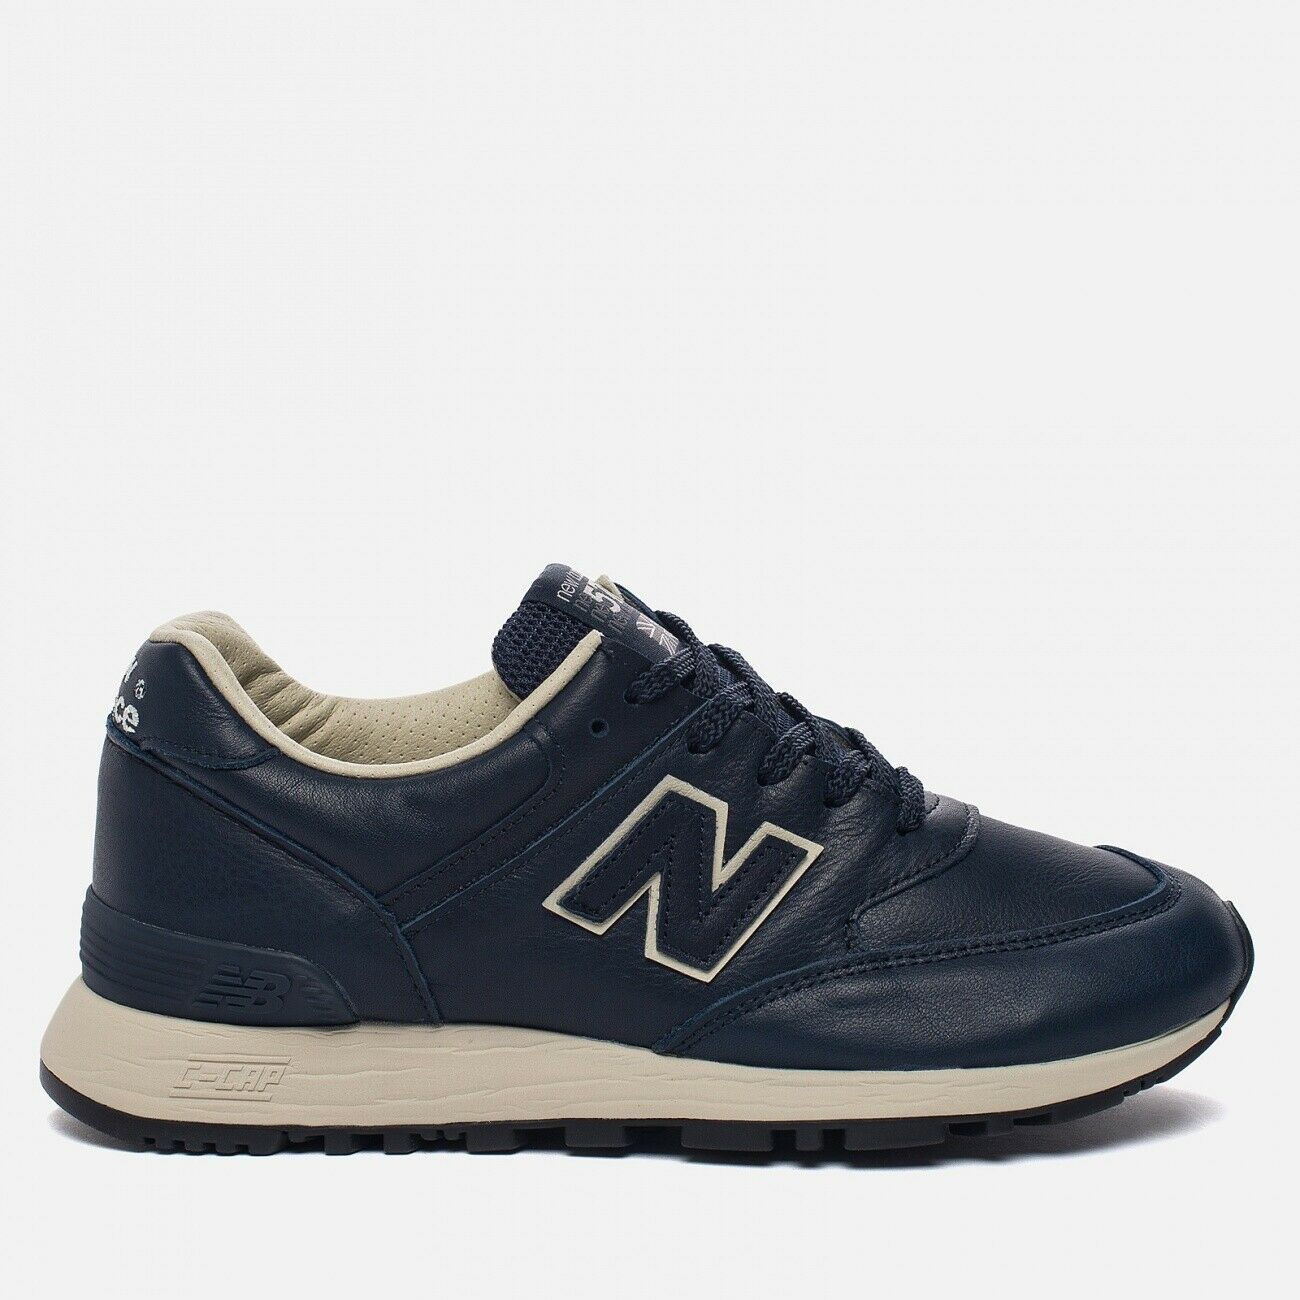 Womens New Balance 576 CNN UK 8 Blue Leather Trainers Made ...